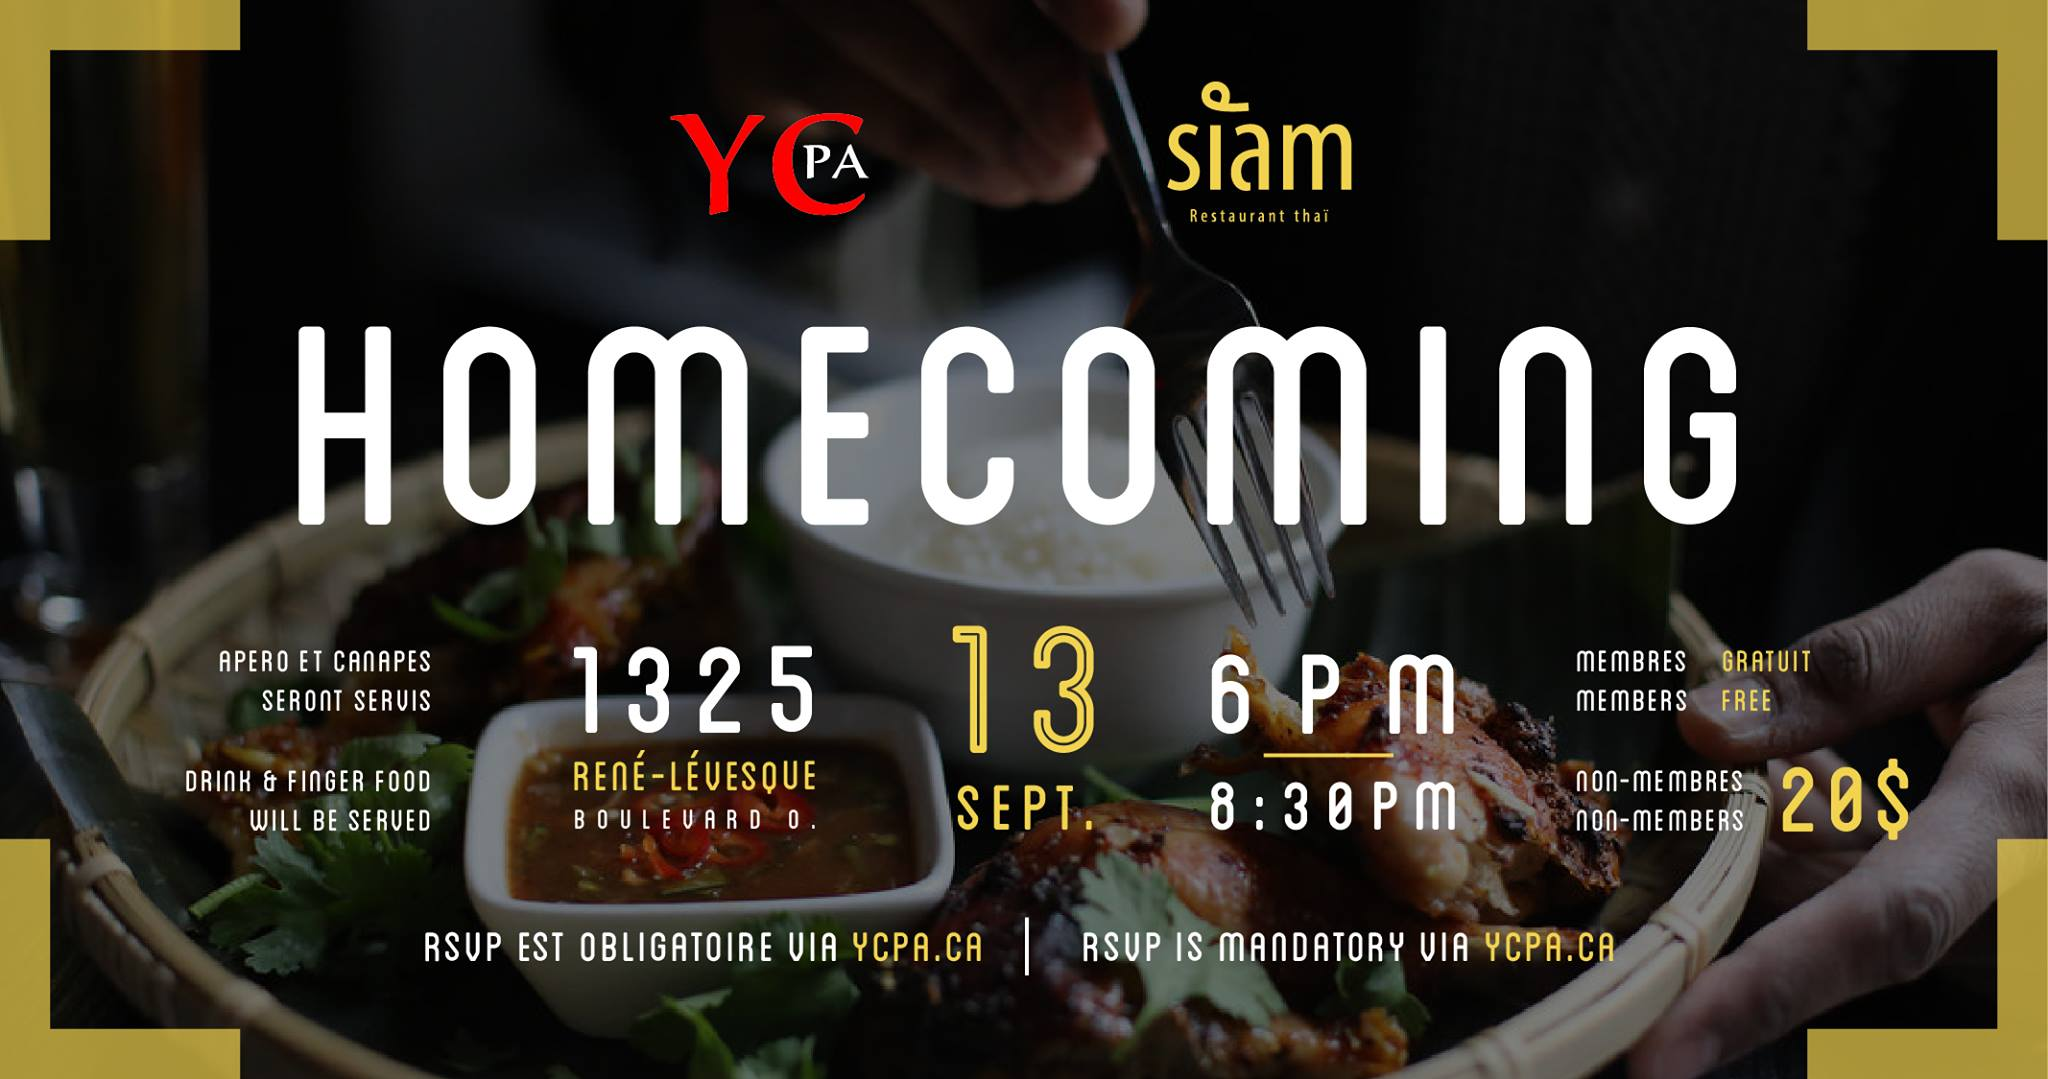 YCPA Homecoming 2018 - Member Price